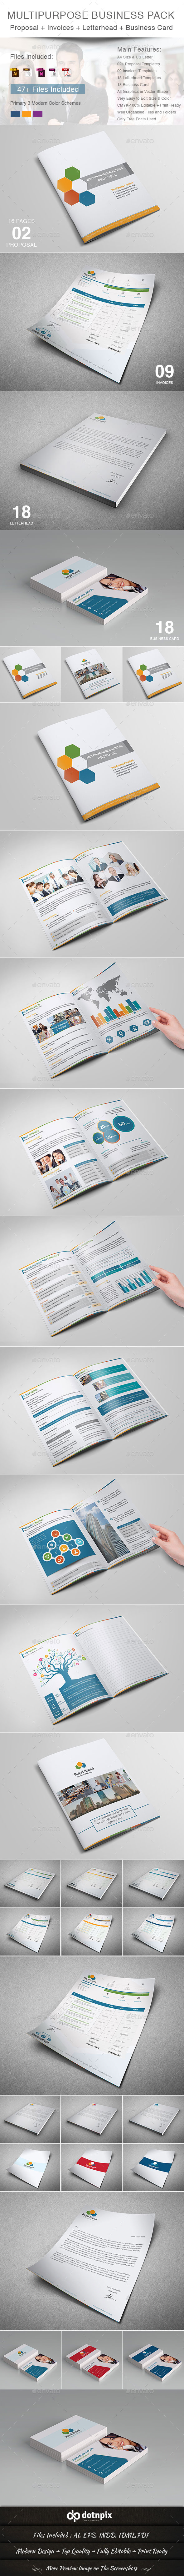 GraphicRiver Multipurpose Business Stationery Pack 10946338